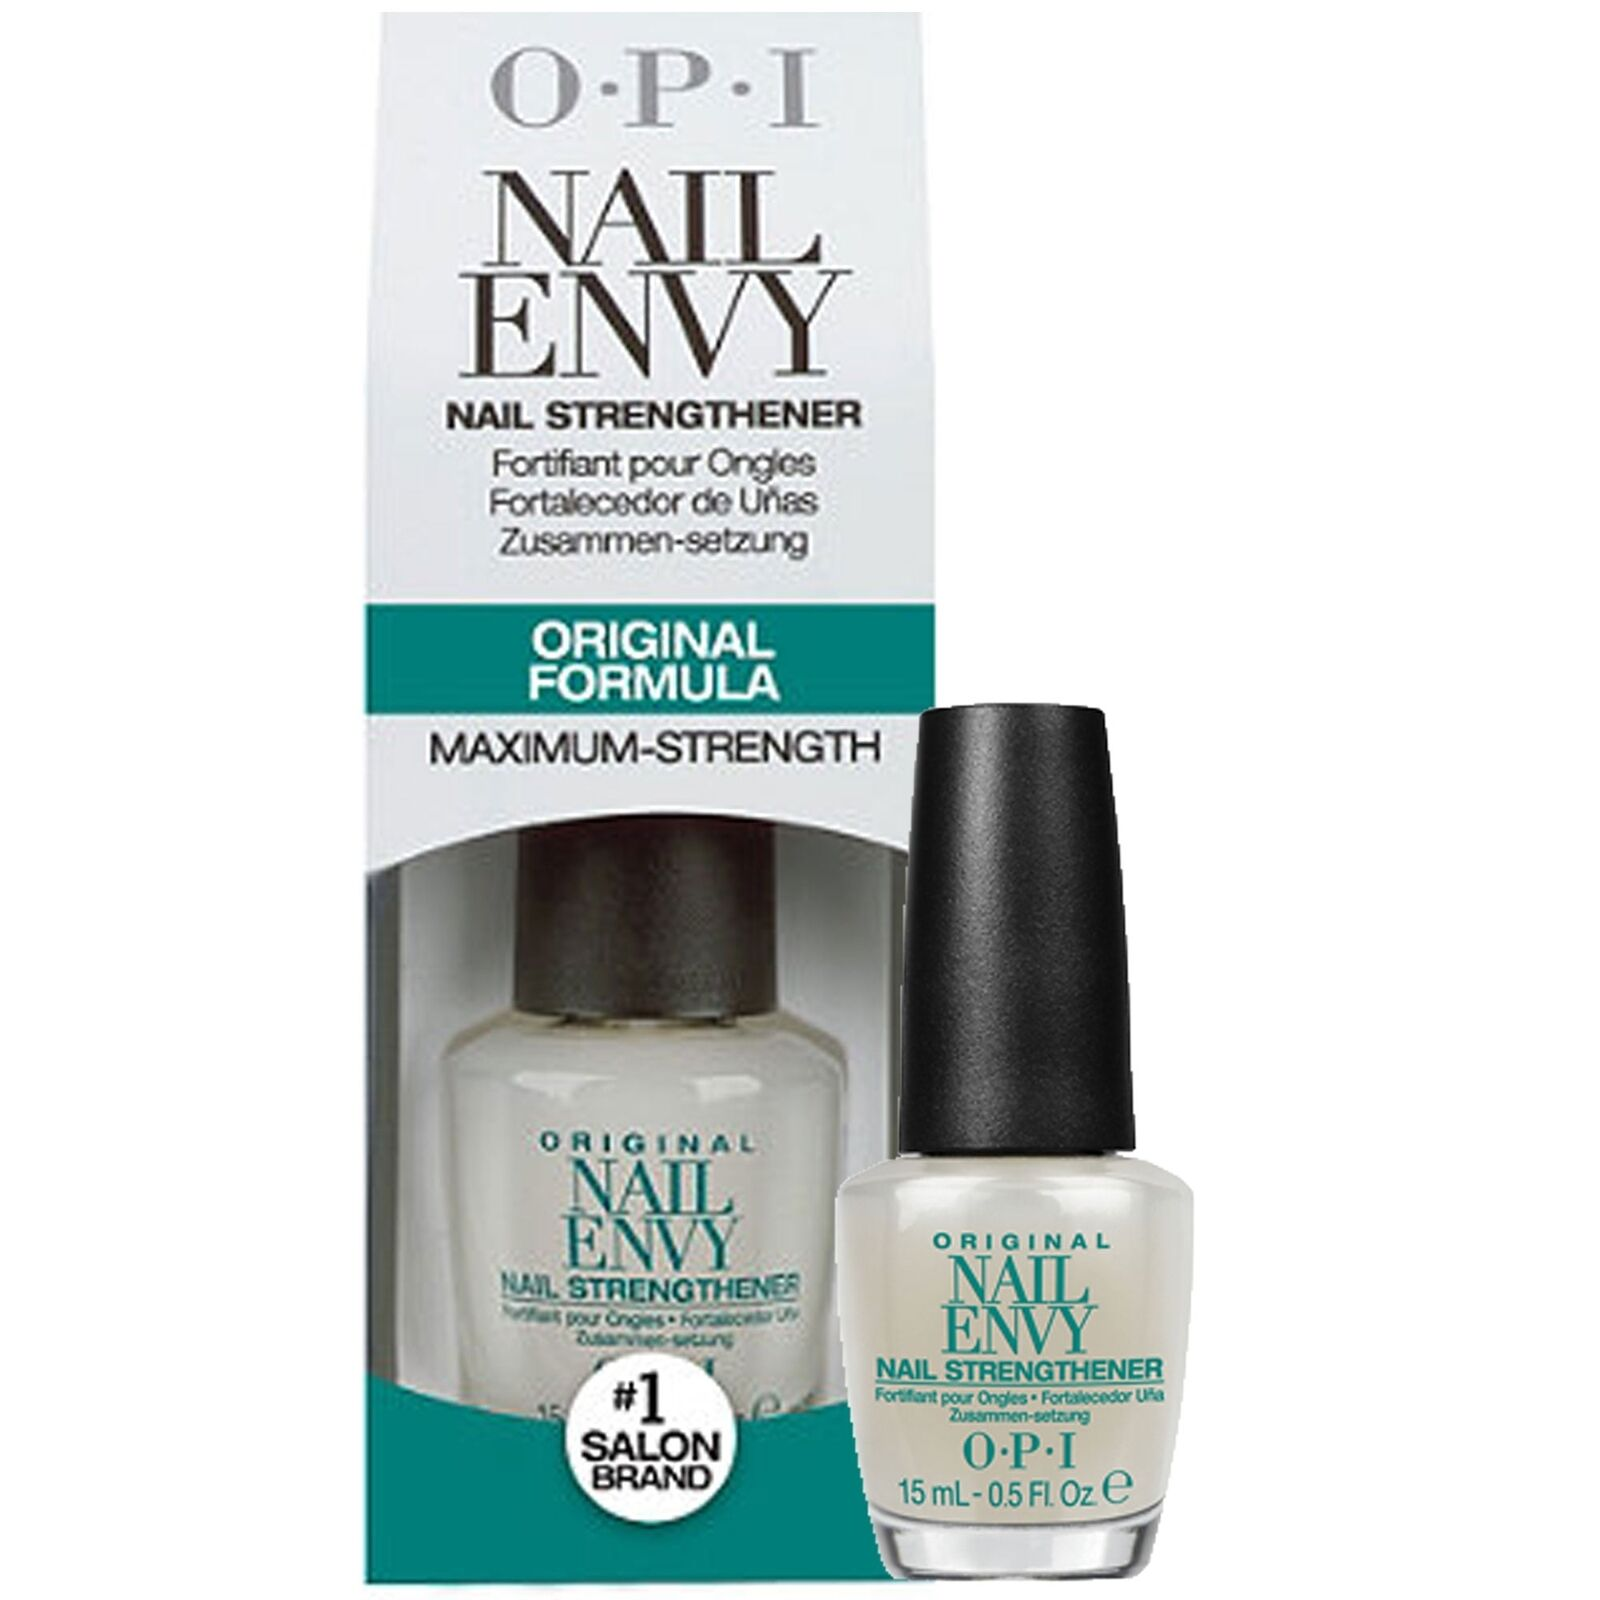 OPI Nail Treatment Strengthener Hardener Envy Original 15ml 0.5 FL ...